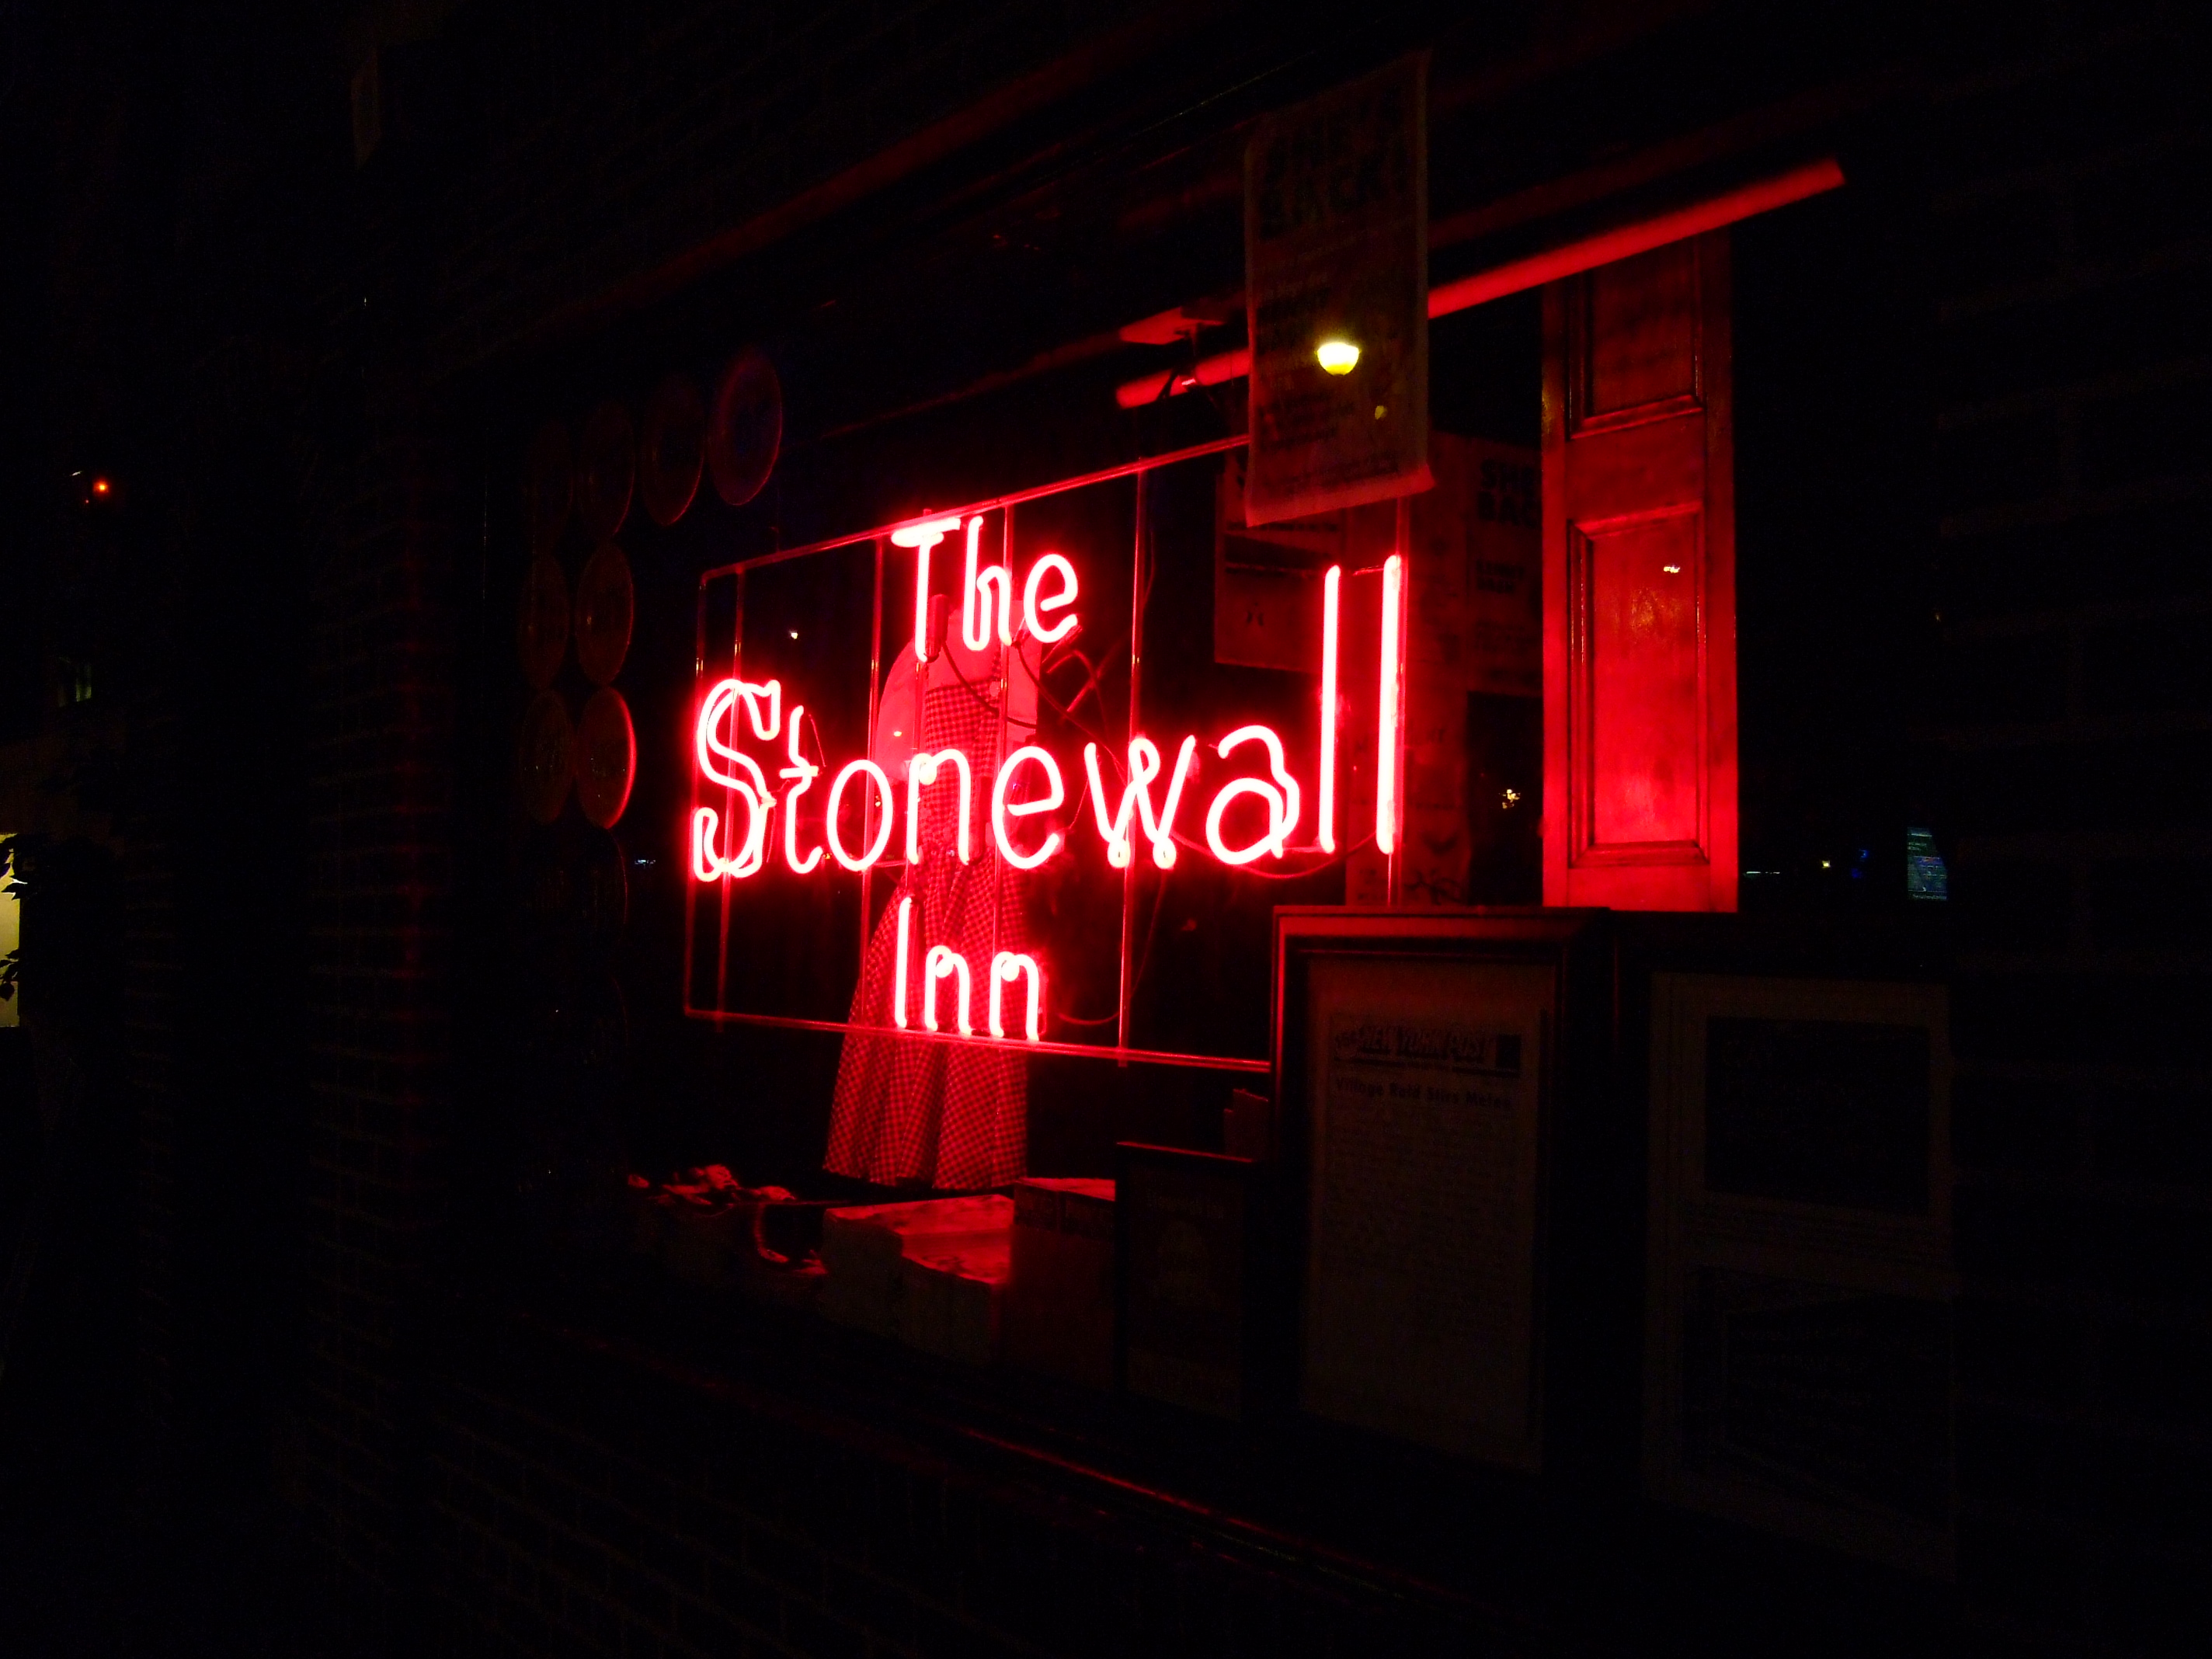 A red neon sign at night reads The Stonewall Inn